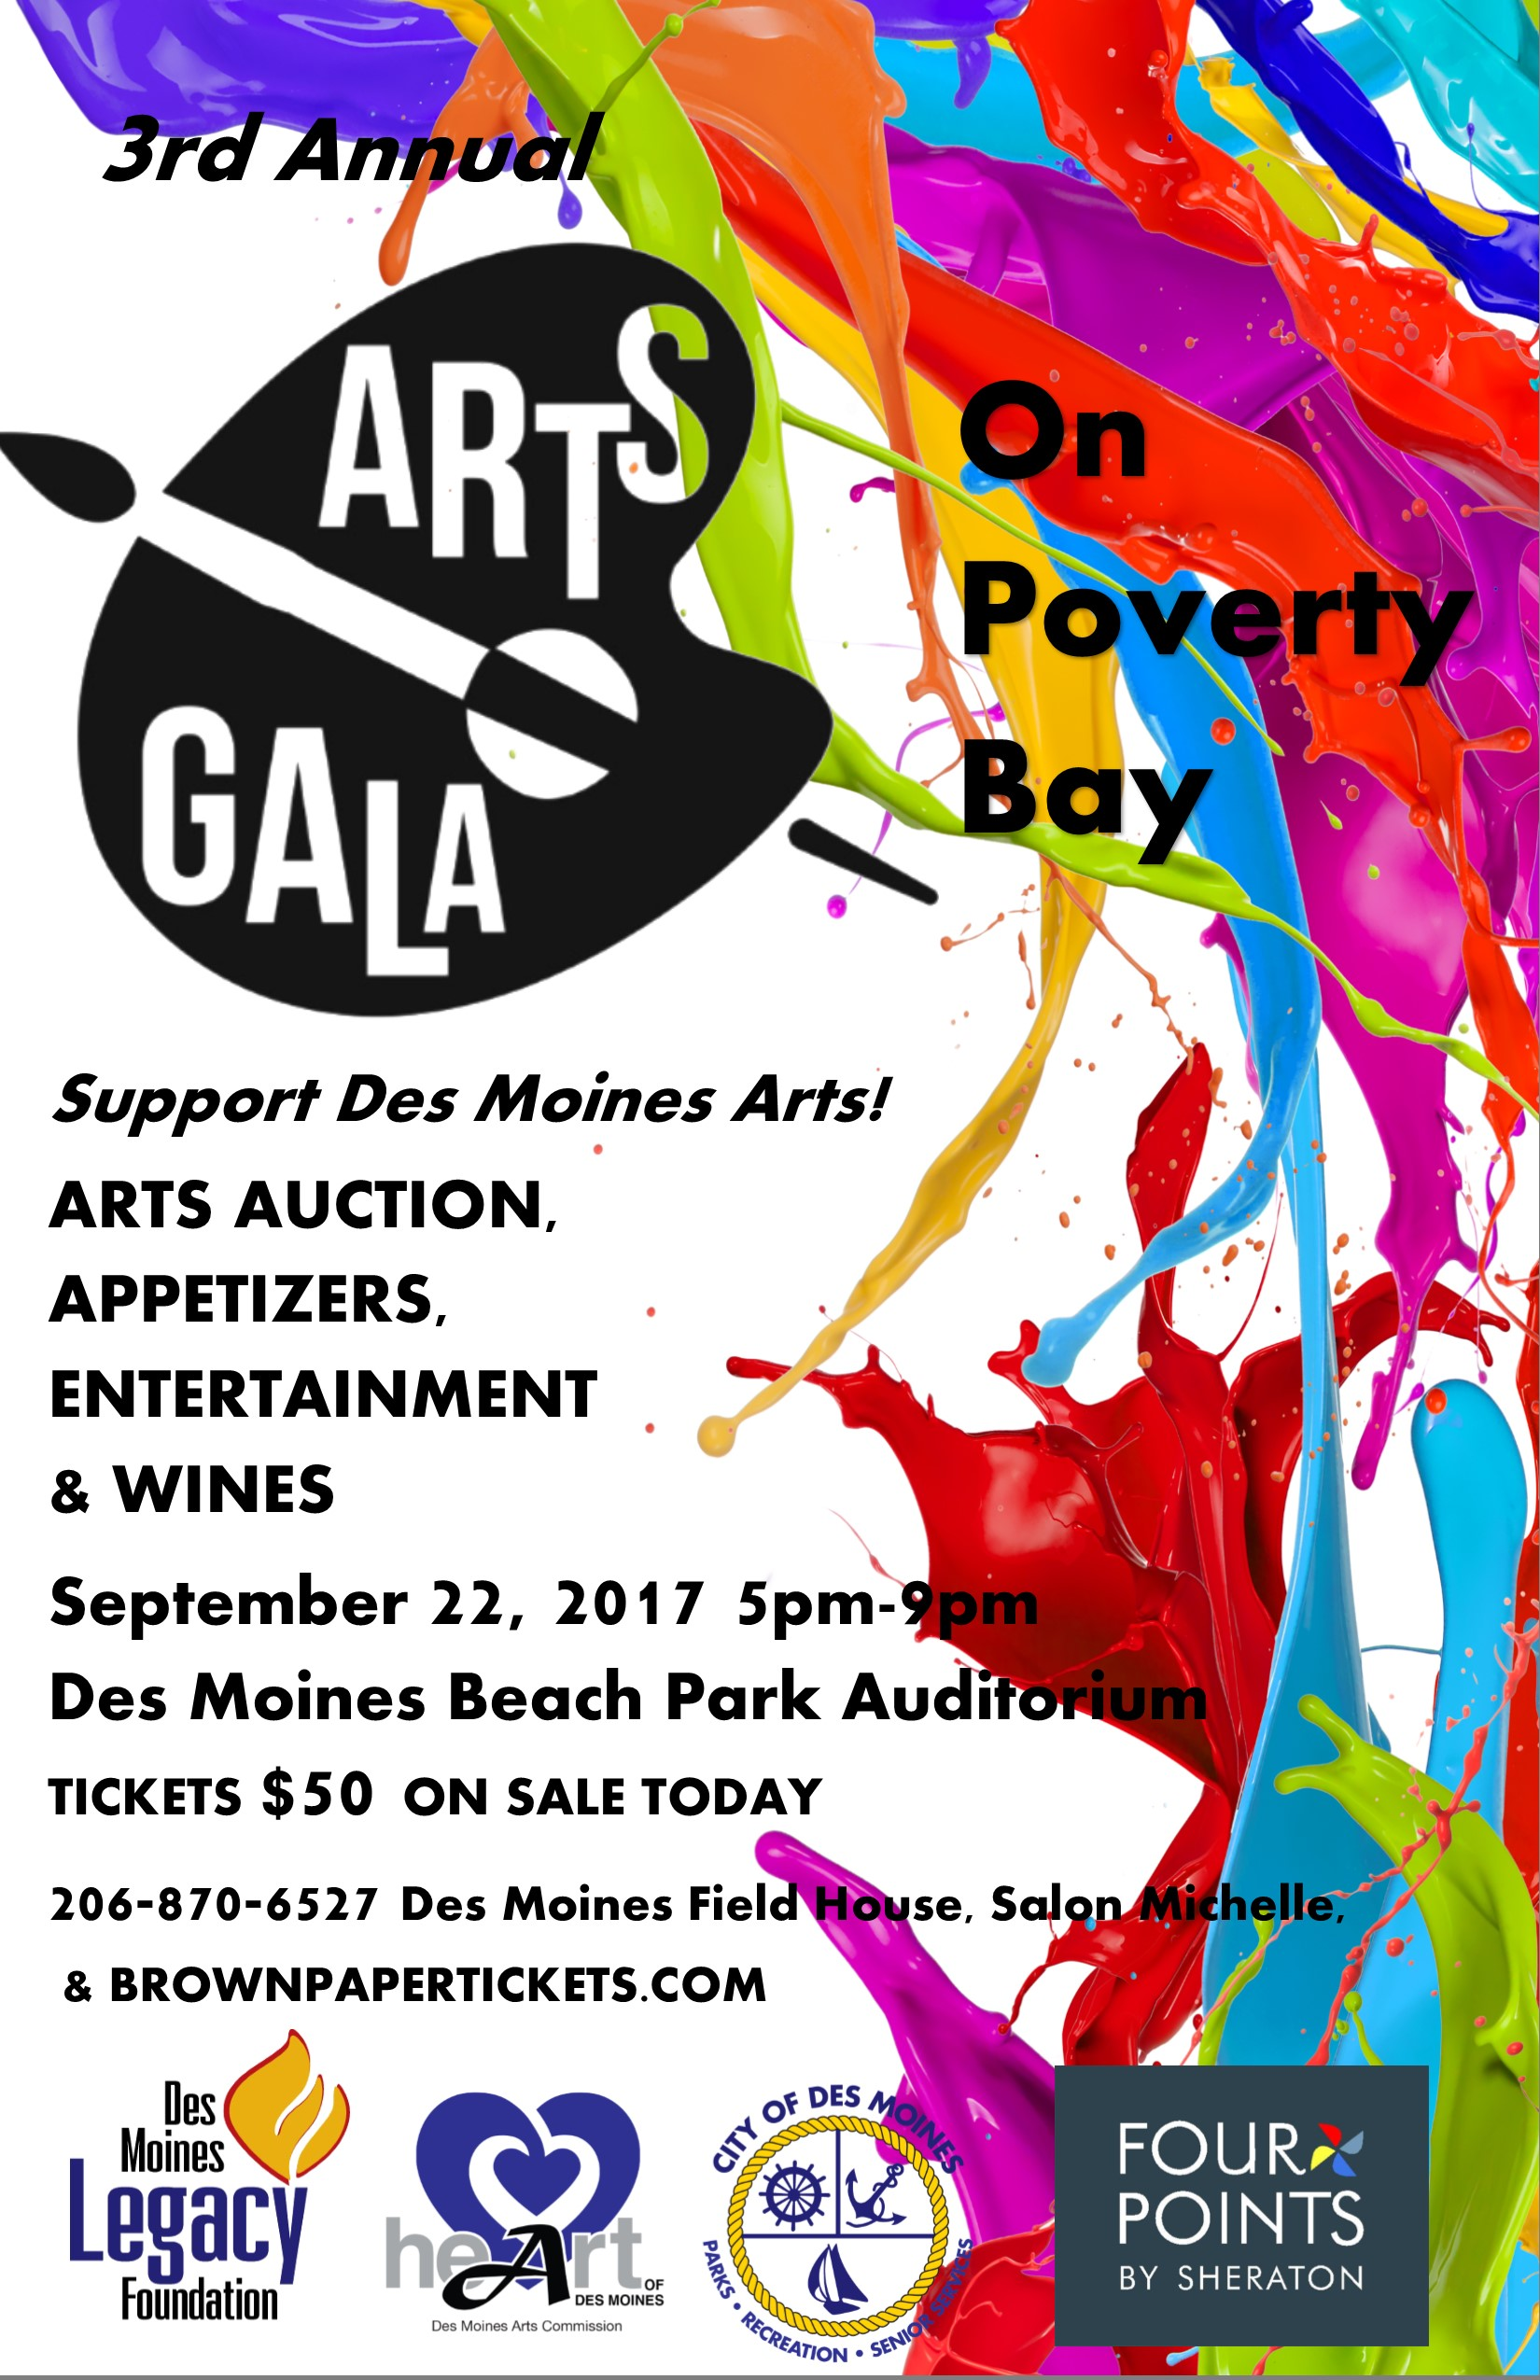 Art Calendar Seattle : Arts gala on poverty bay seattle art calendar local